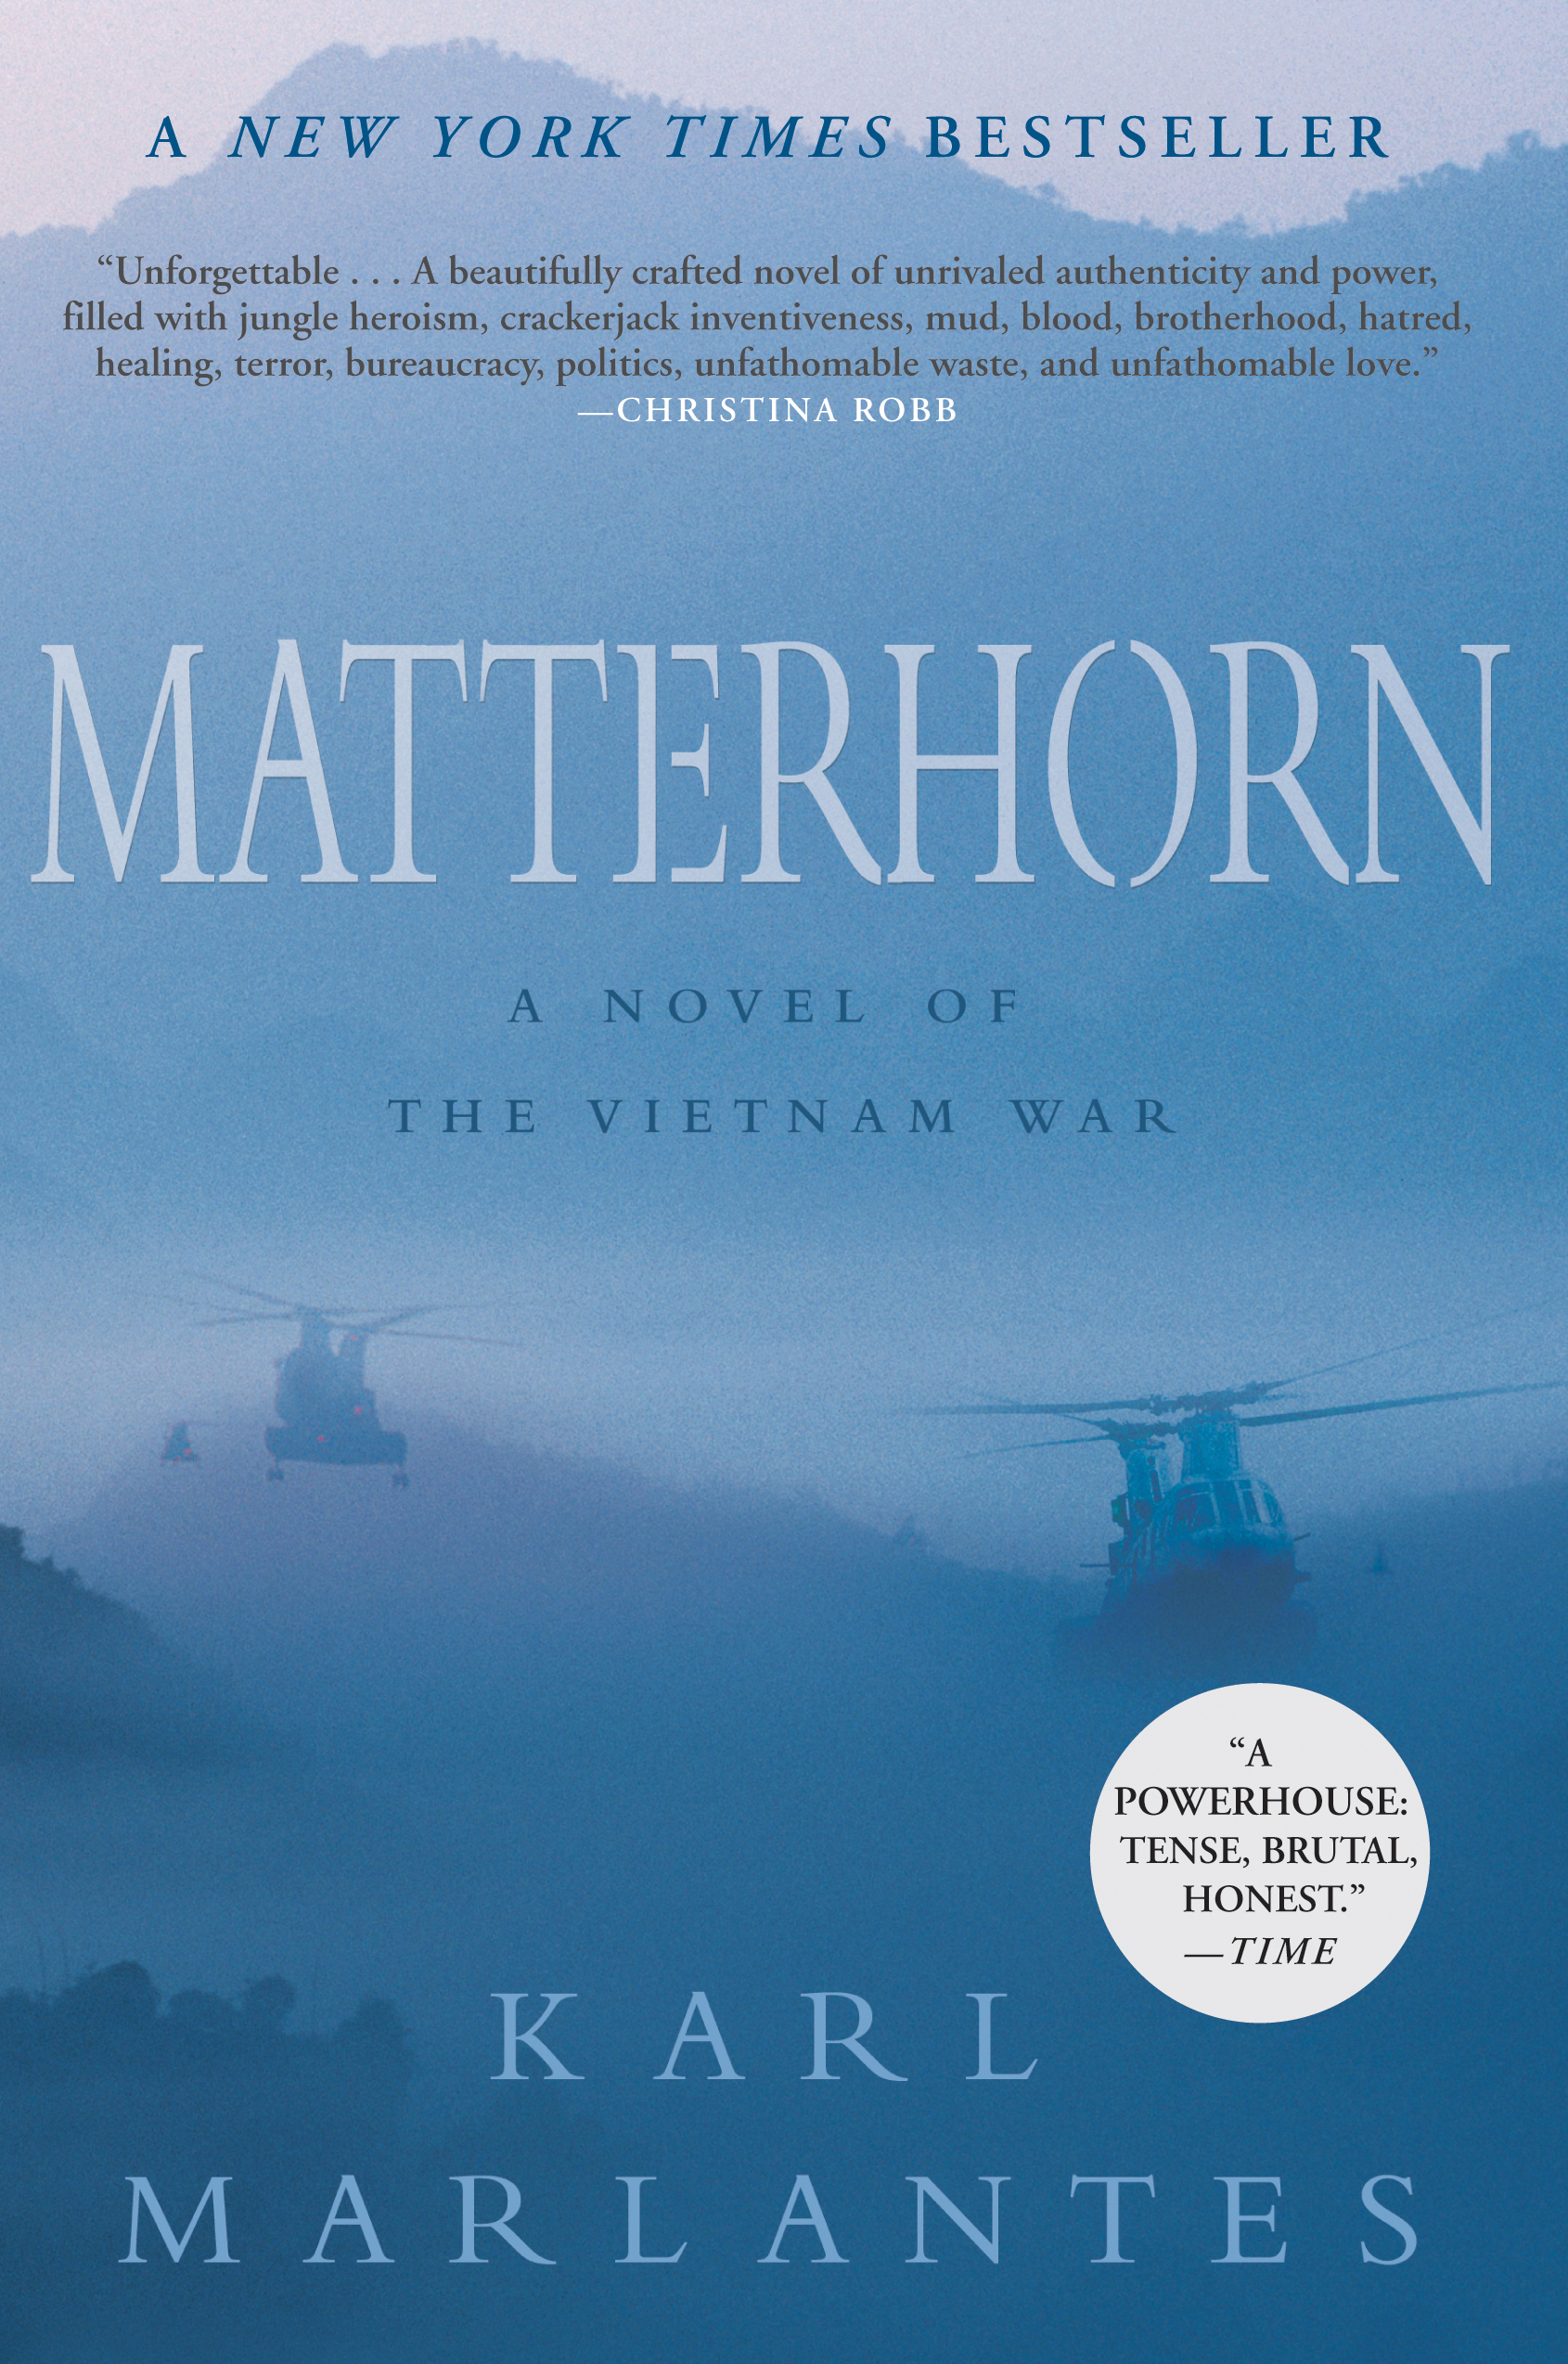 25) Matterhorn - You may never read a book as well written as Karl Marlantes' debut novel Matterhorn. Very roughly based on Malantes' time in Vietnam as a marine, Matterhorn is without a doubt a modern masterpiece. It's a novel where nearly every single world is perfectly chosen, and the prevalence of tension, anxiety, and agony sit perfectly with the few yet powerful veins of hope and understanding that run throughout the text. It may be the best war story ever written, and even if it's not it's most certainly on the same level as novels like Remarque's All Quiet on the Western Front.